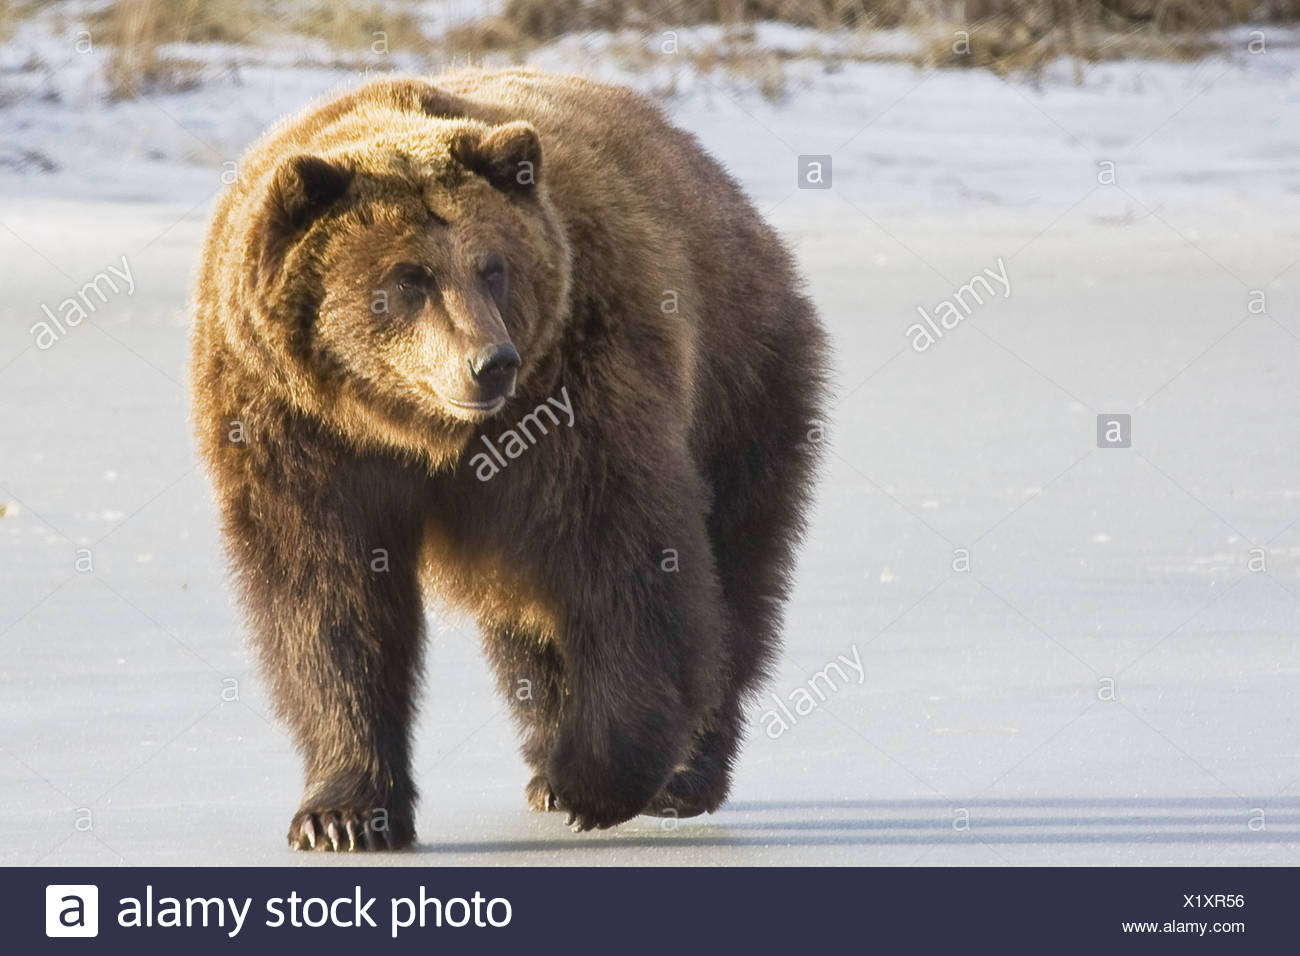 CAPTIVE Grizzly walking in snow At the Alaska Wildlife Conservation Center - Stock Image